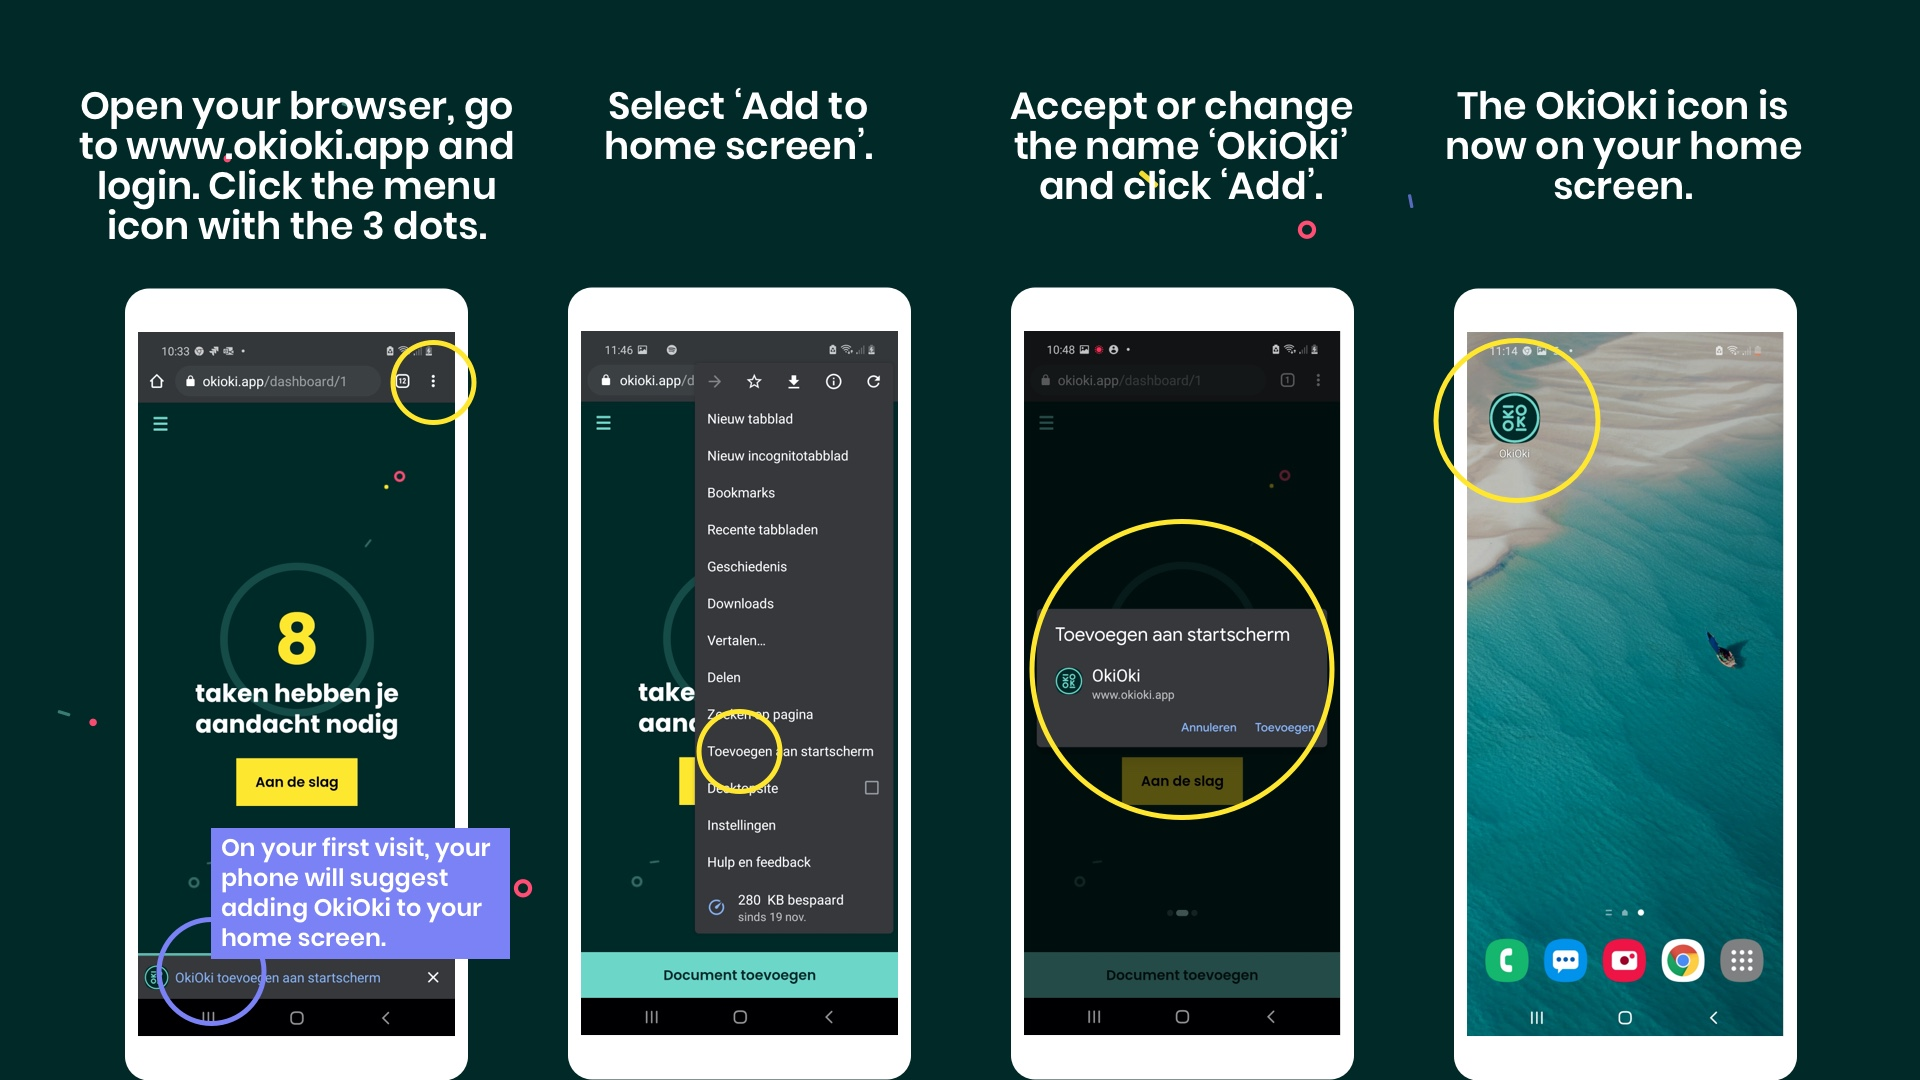 How to add the OkiOki app to the home screen of your Android device